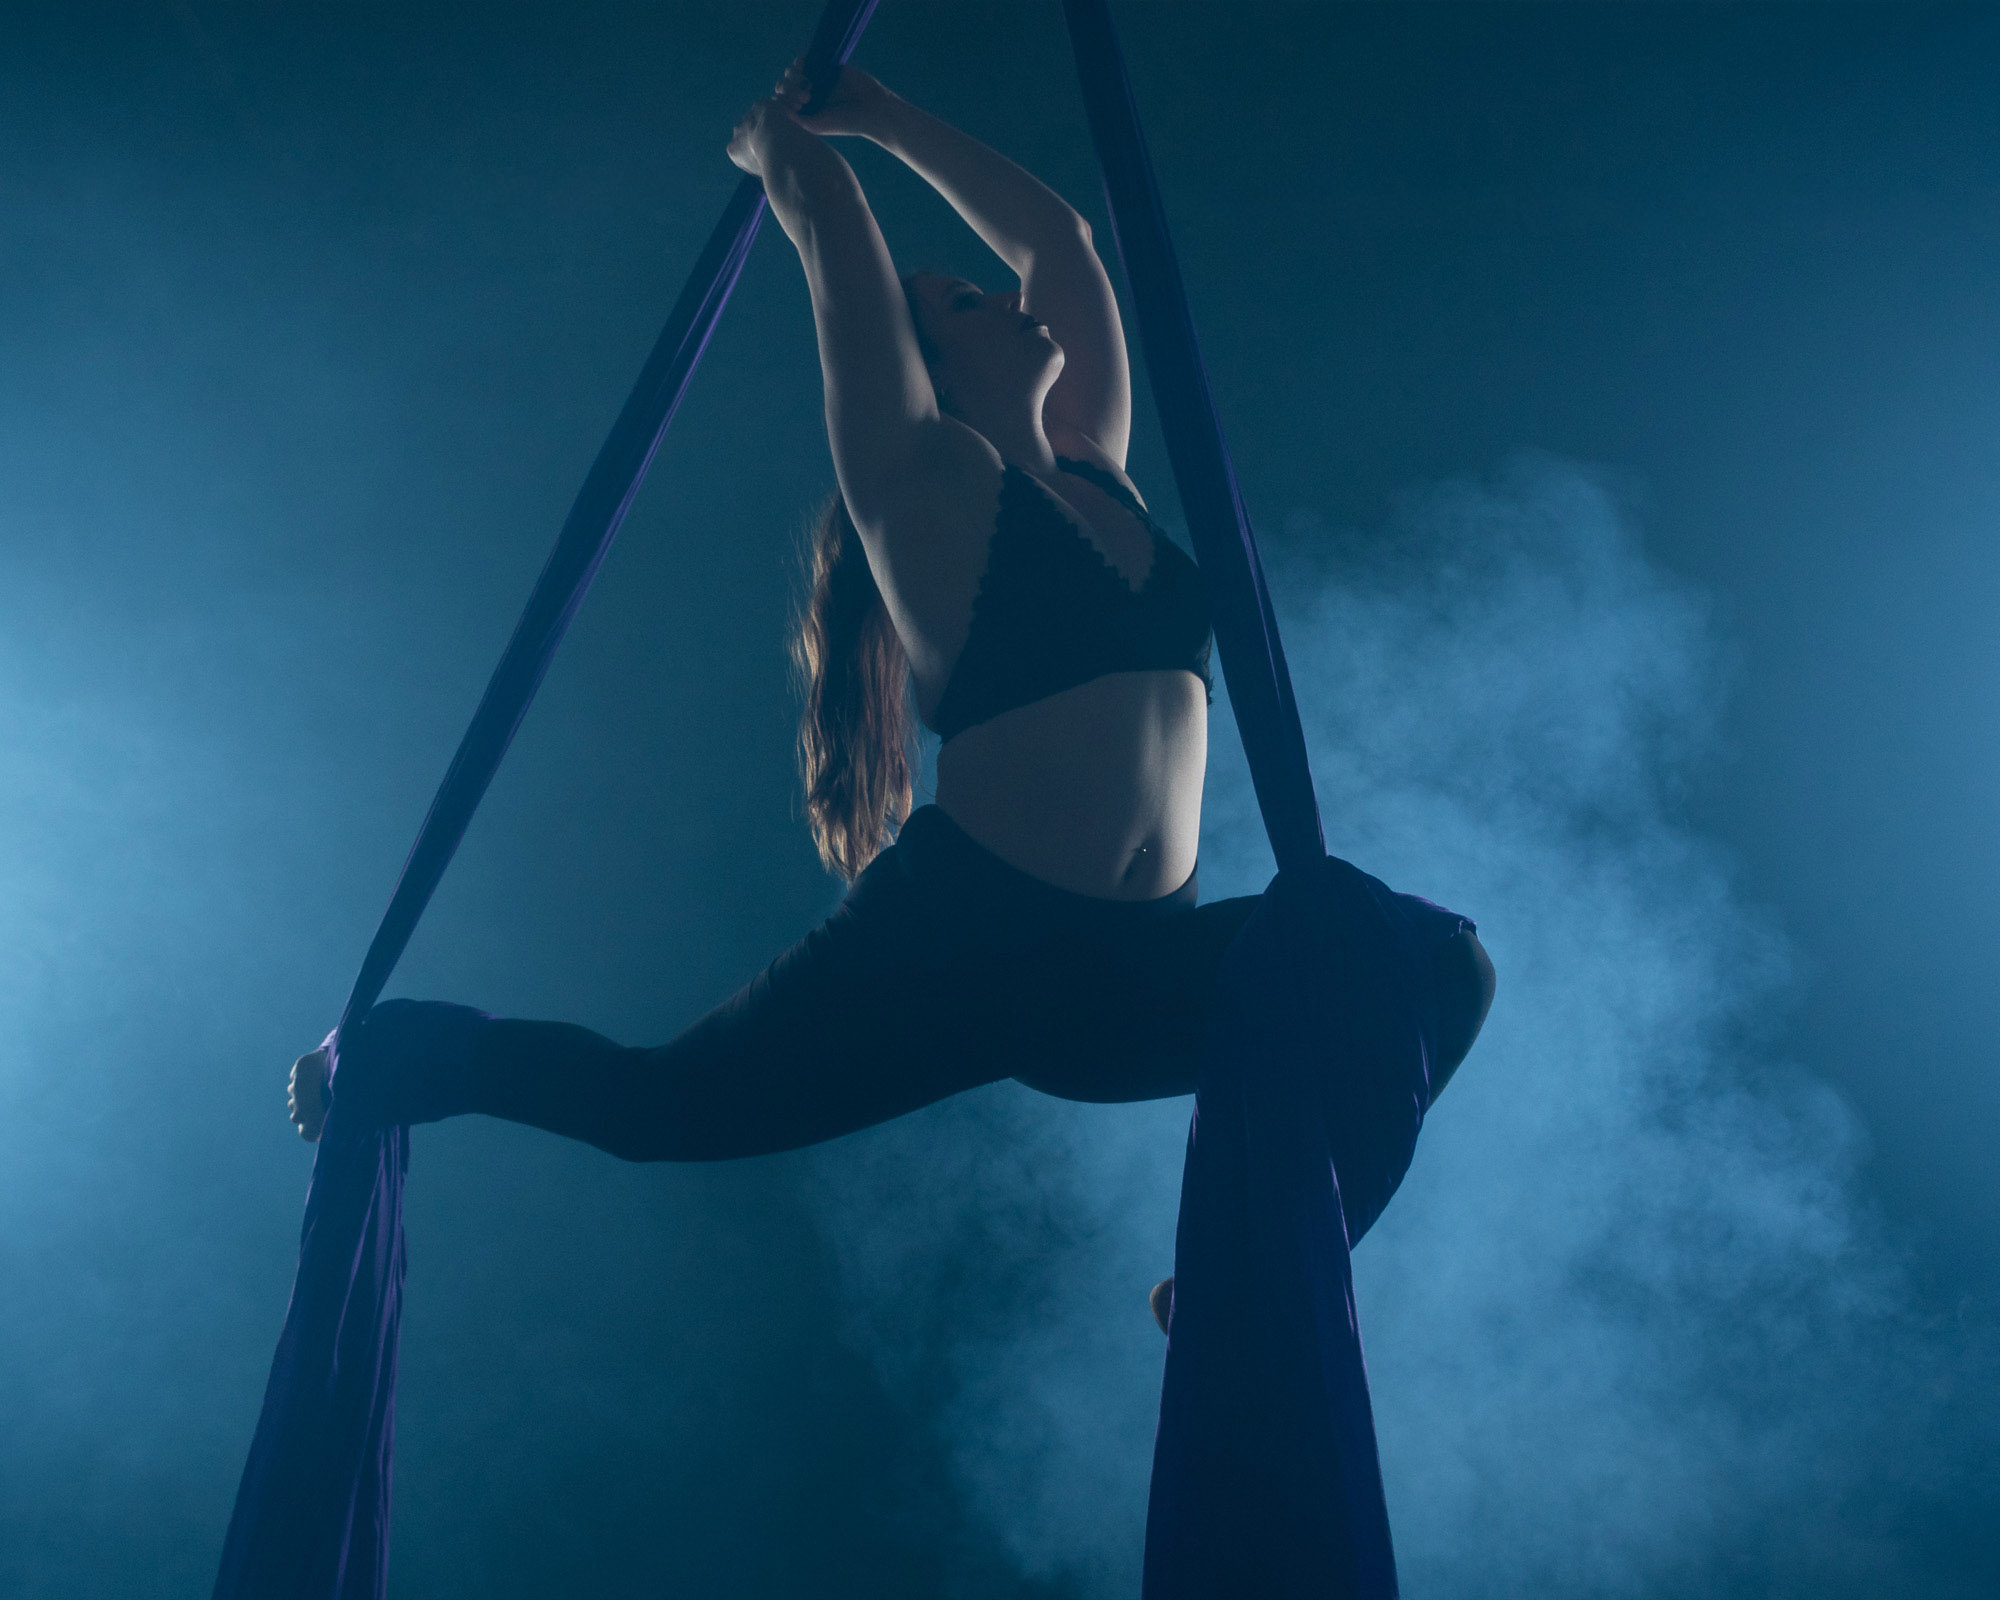 woman-on-silks.jpg